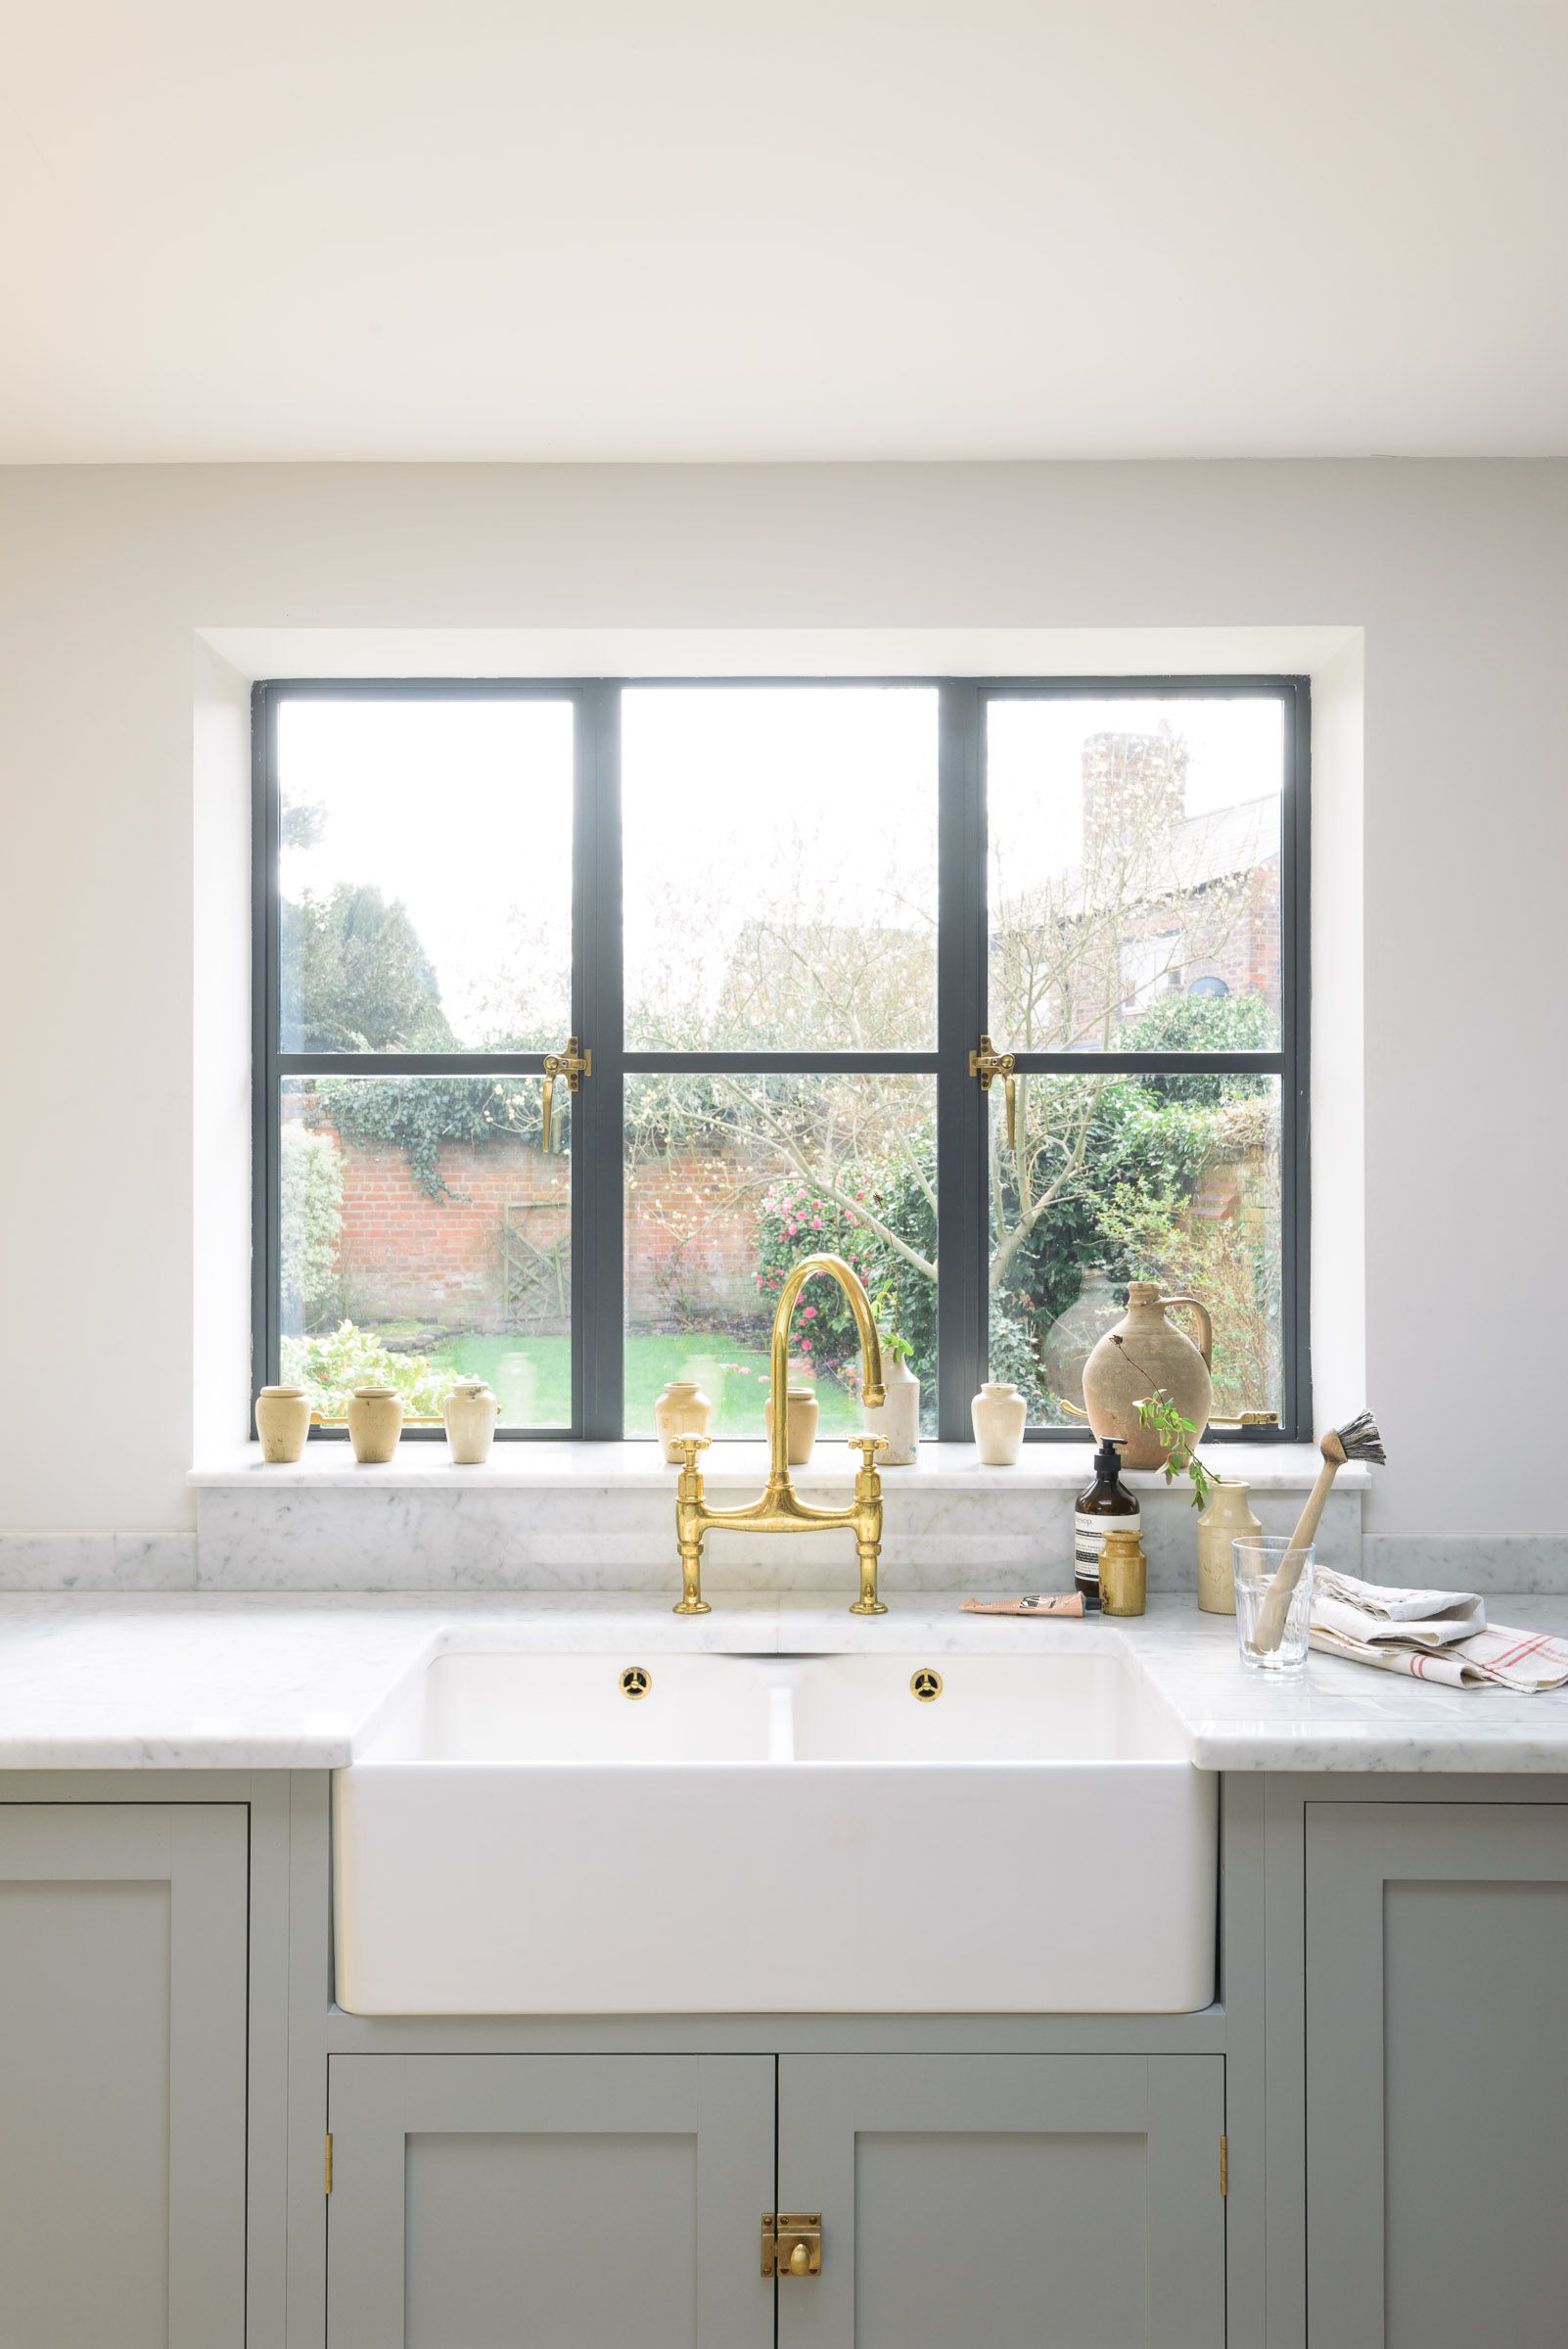 A Double Belfast Sink And Devol Aged Brass Taps Are The Perfect Combination Interior Design Kitchen Devol Kitchens Kitchen Interior